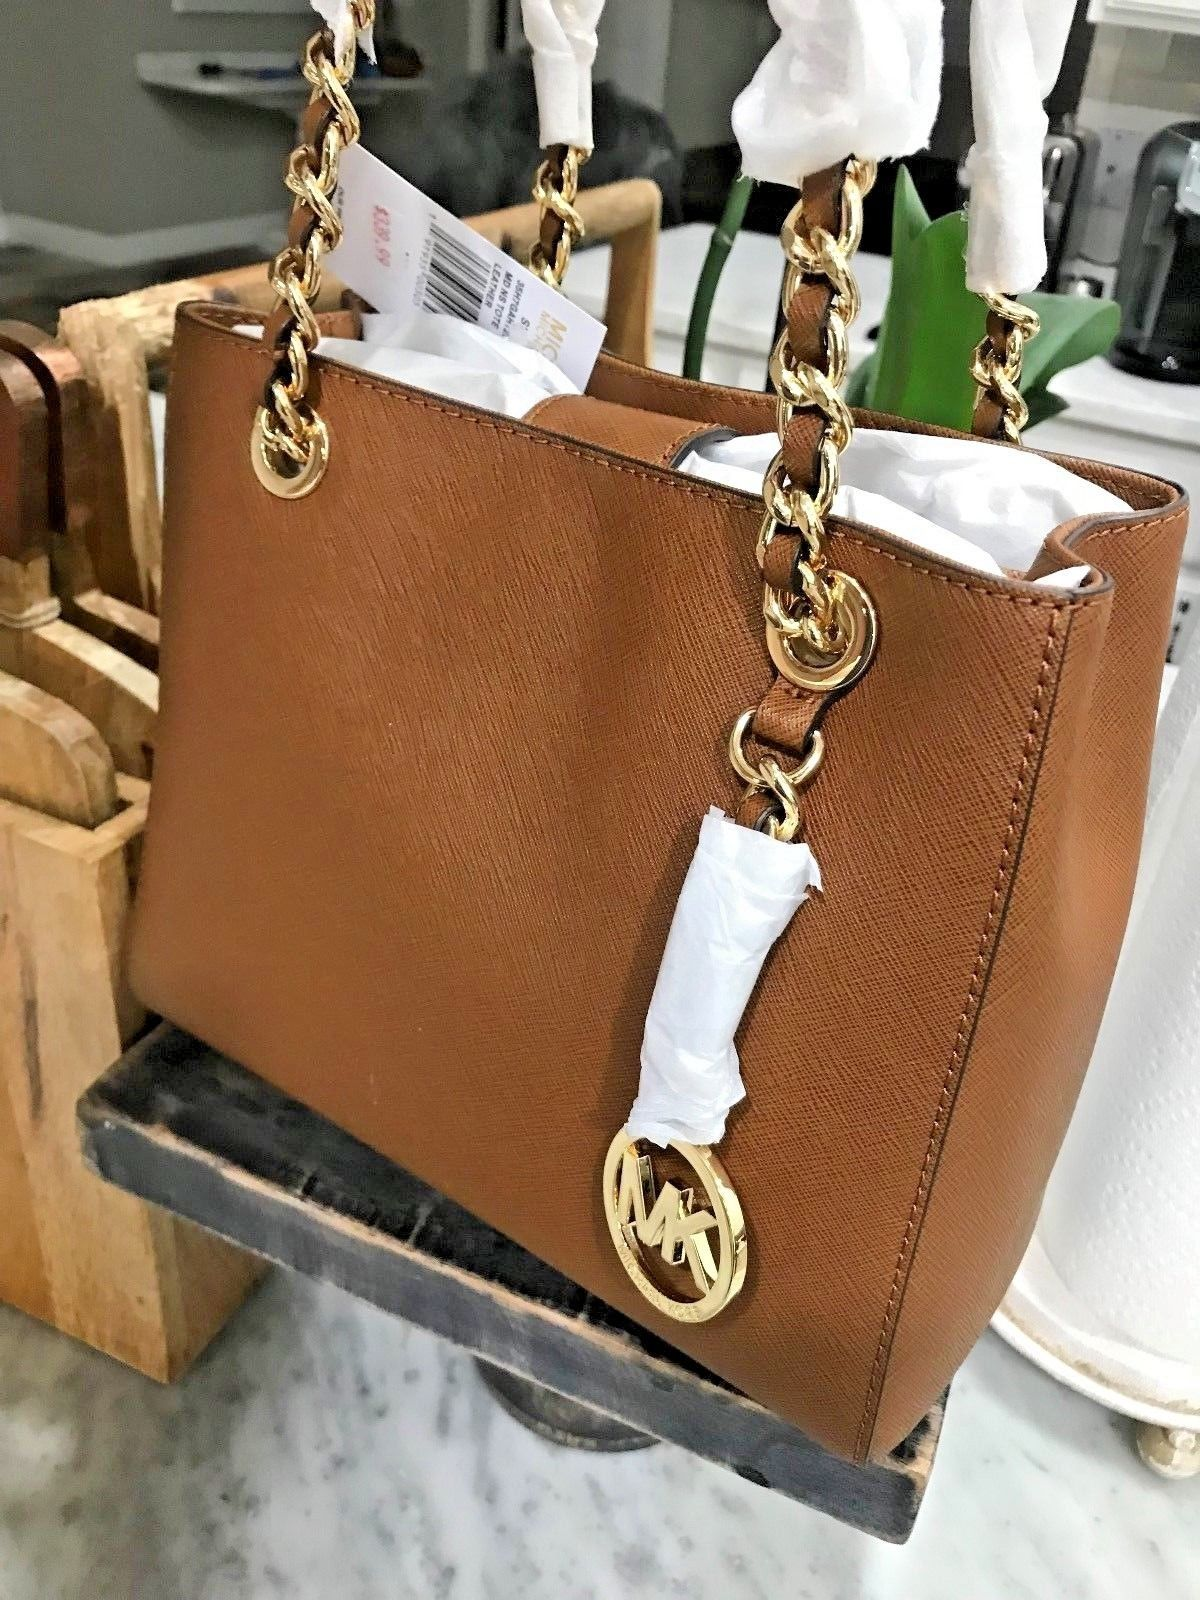 87162c6a9d96 ... closeout michael kors susannah medium ns convertible tote saffiano  bagaglio in pelle 5ef04 51361